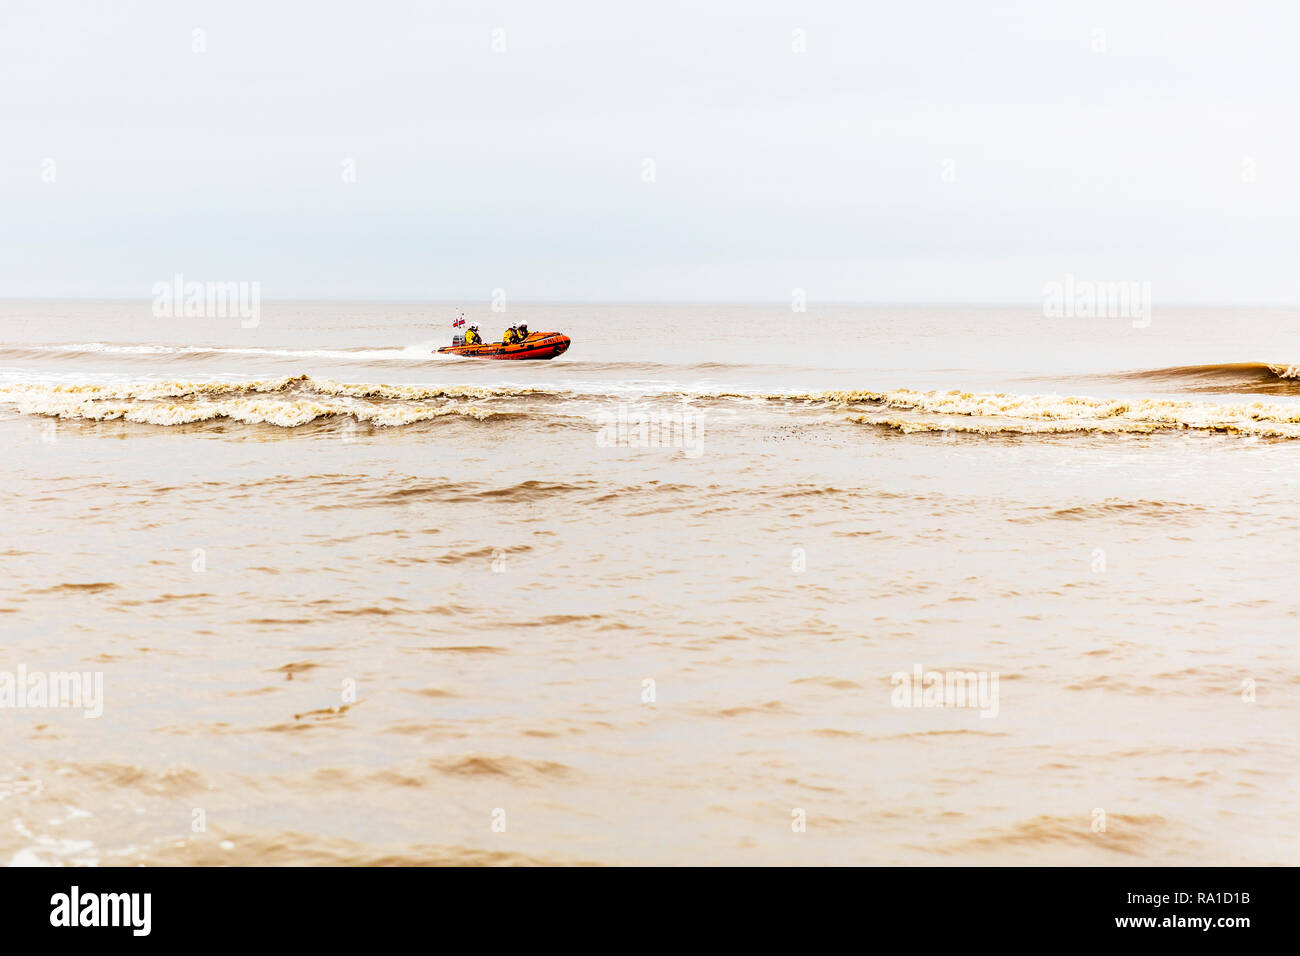 Mablethorpe, Lincolnshire, UK. 30th December 2018. Mablethorpe coastguard practicing maneuvers  in the open sea on the East coast of the UK at Mablethorpe, Lincolnshire on 30/12/2018 RNLI coastguard in boat in the sea in RNLI lifeboat Credit: Tommy  (Louth)/Alamy Live News Stock Photo